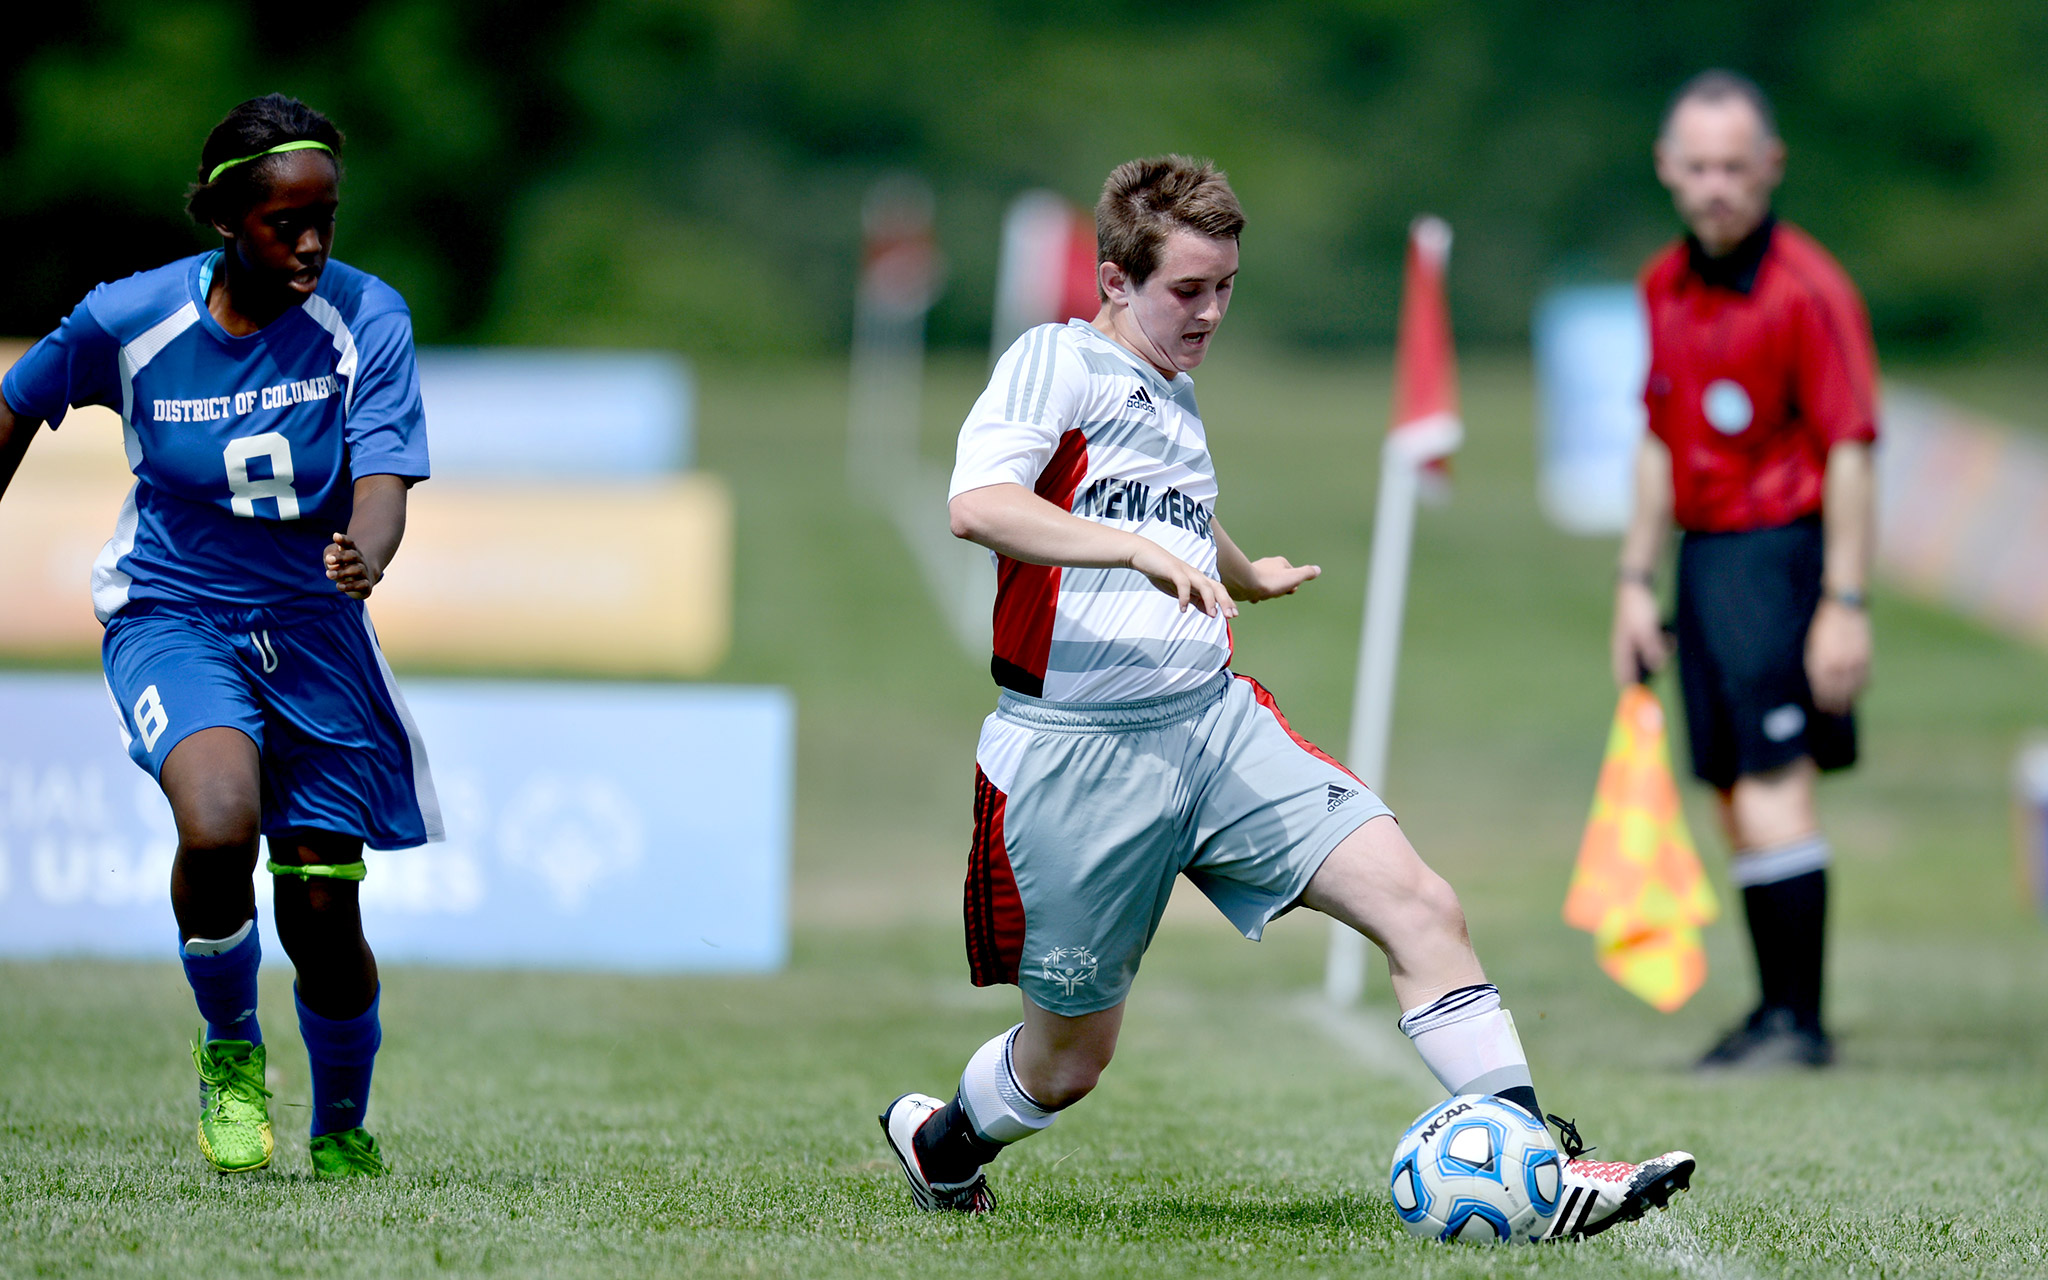 Teams from the District of Columbia and New Jersey were among the many traditional (Special Olympics athletes) and Unified Sports (athletes with and without intellectual disabilities) five-a-side soccer teams at the 2014 USA Games.